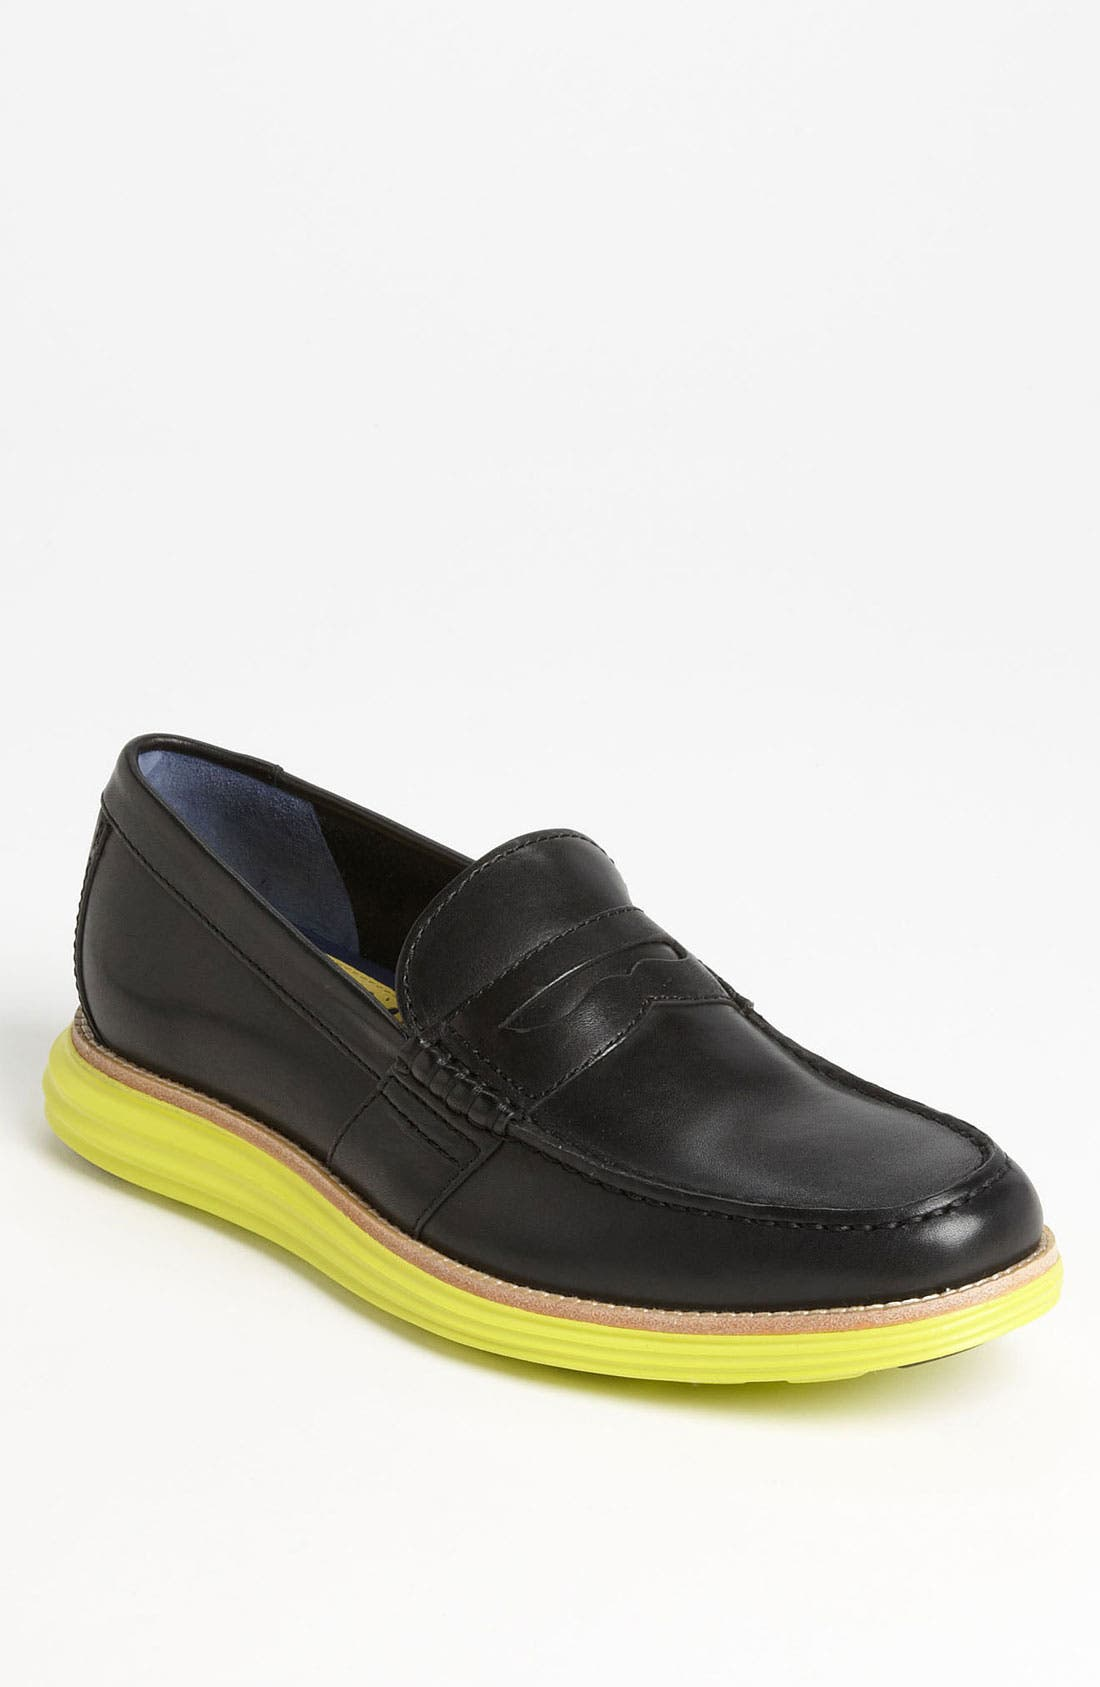 COLE HAAN,                             'LunarGrand' Penny Loafer,                             Main thumbnail 1, color,                             001